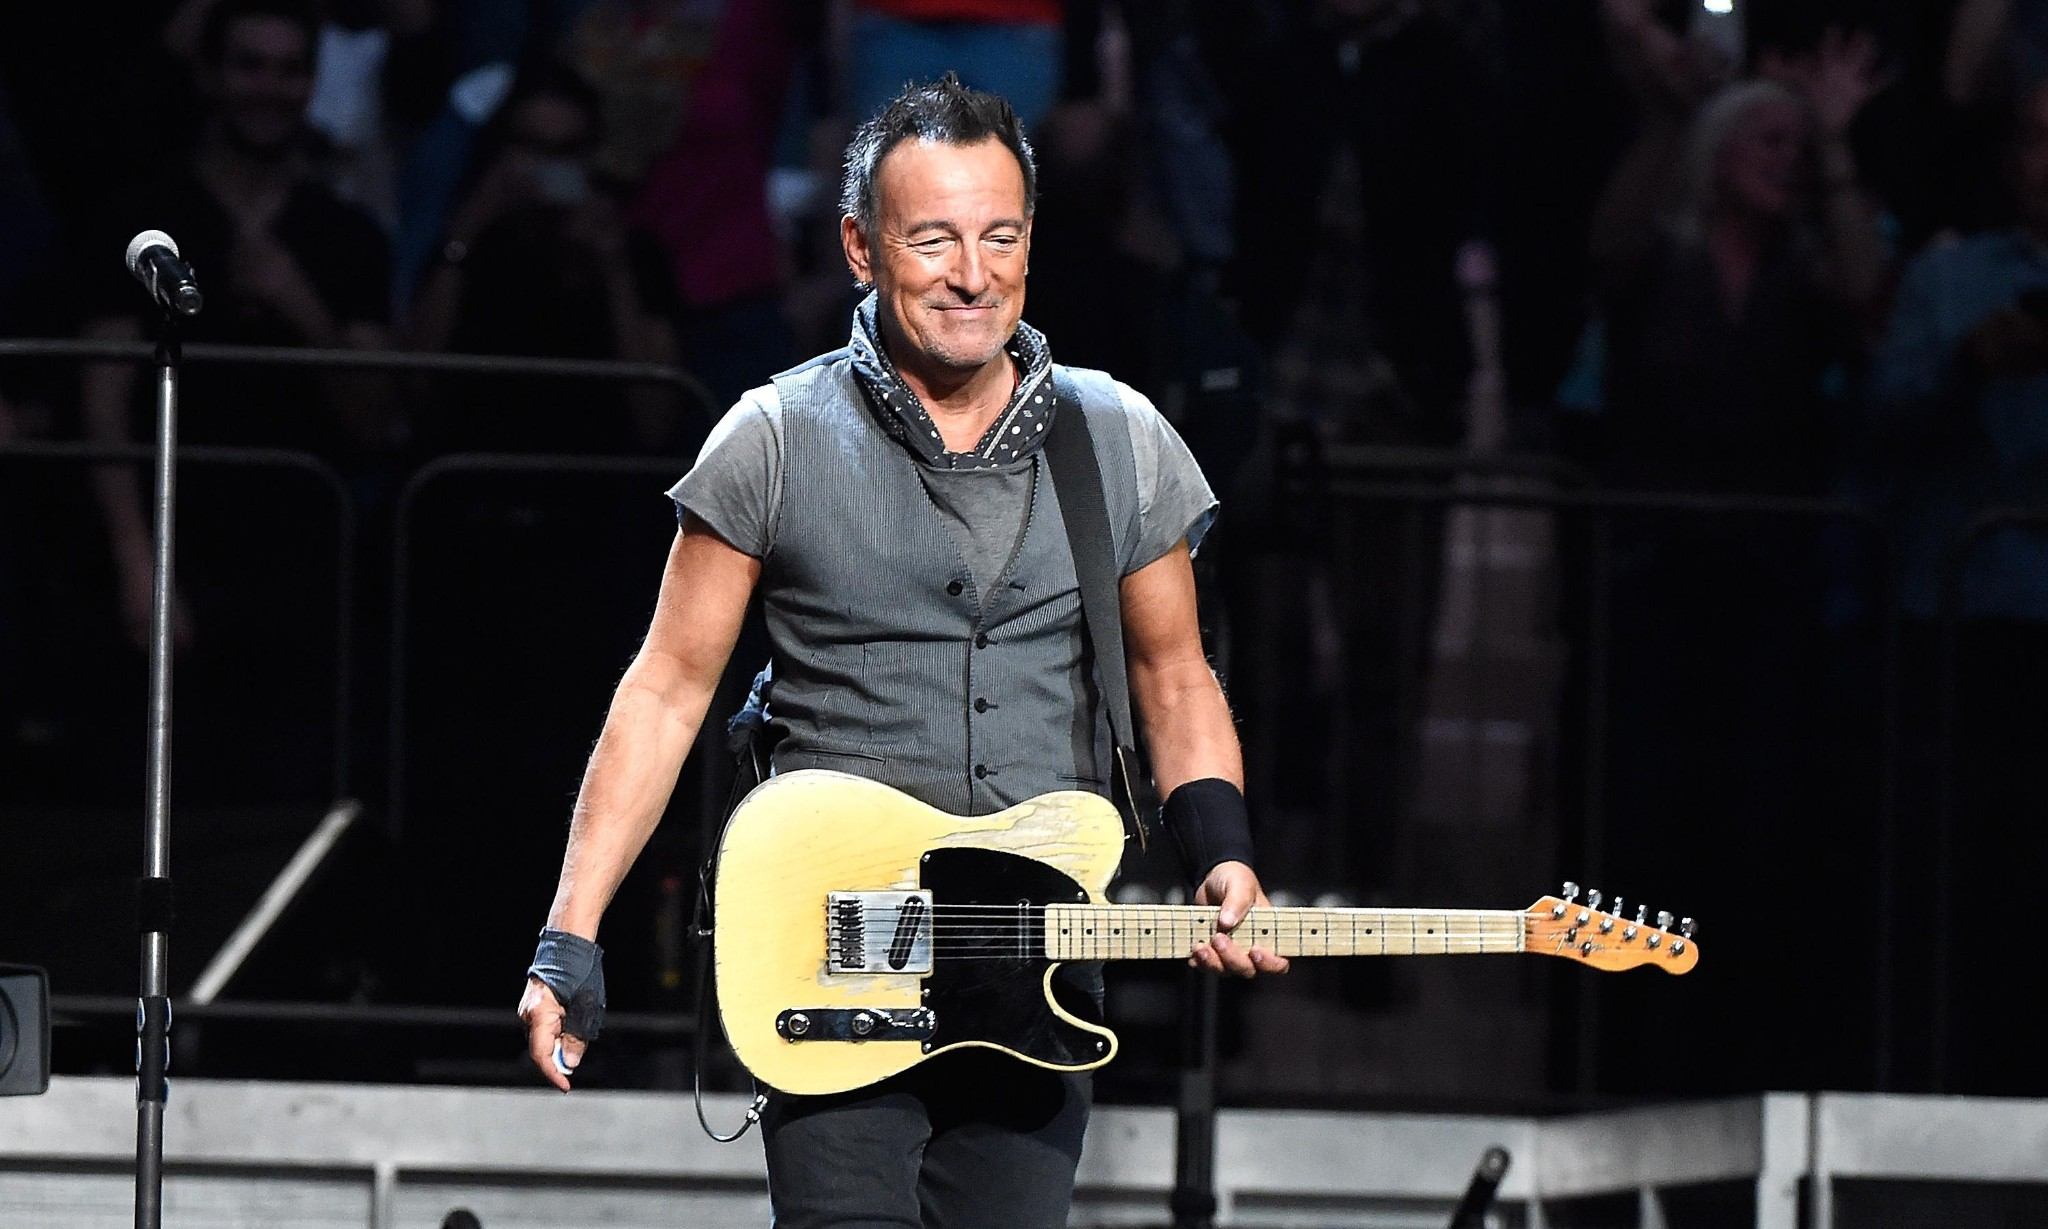 Bruce Springsteen called 'bully' for protesting anti-LGBT law